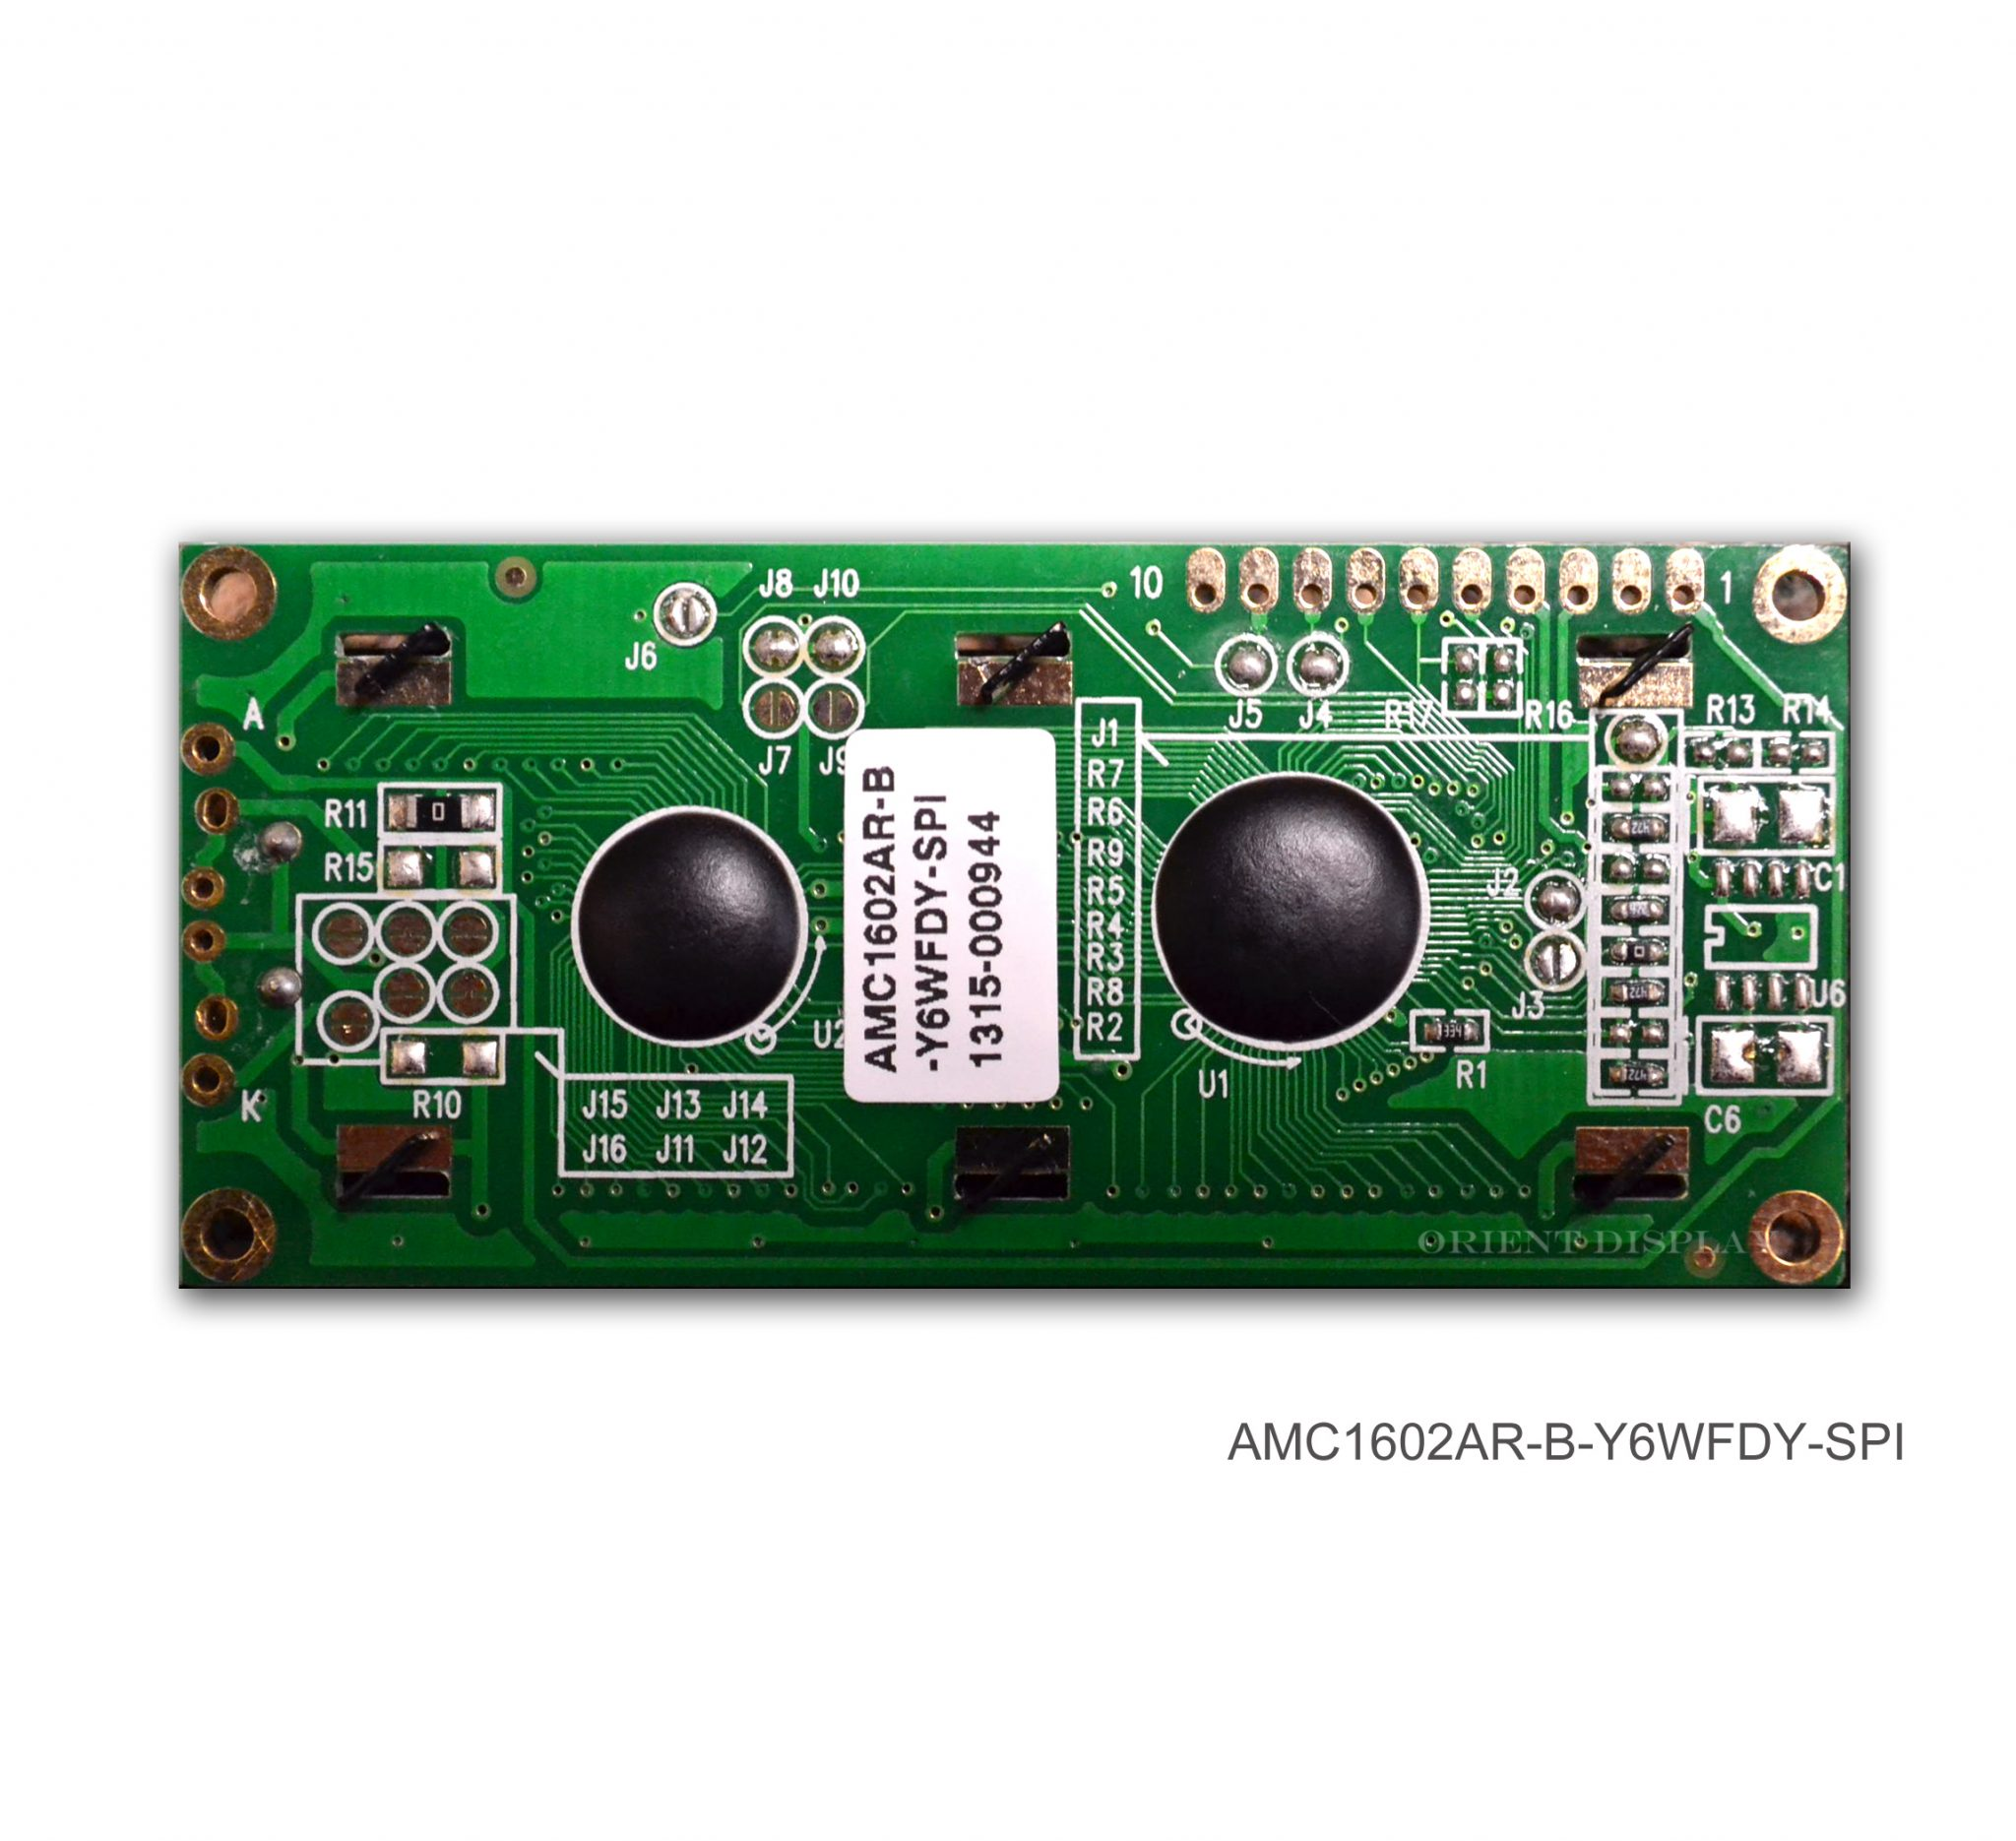 AMC1602AR-B-Y6WFDY-SPI (16x2 Character LCD Module - SPI Interface)